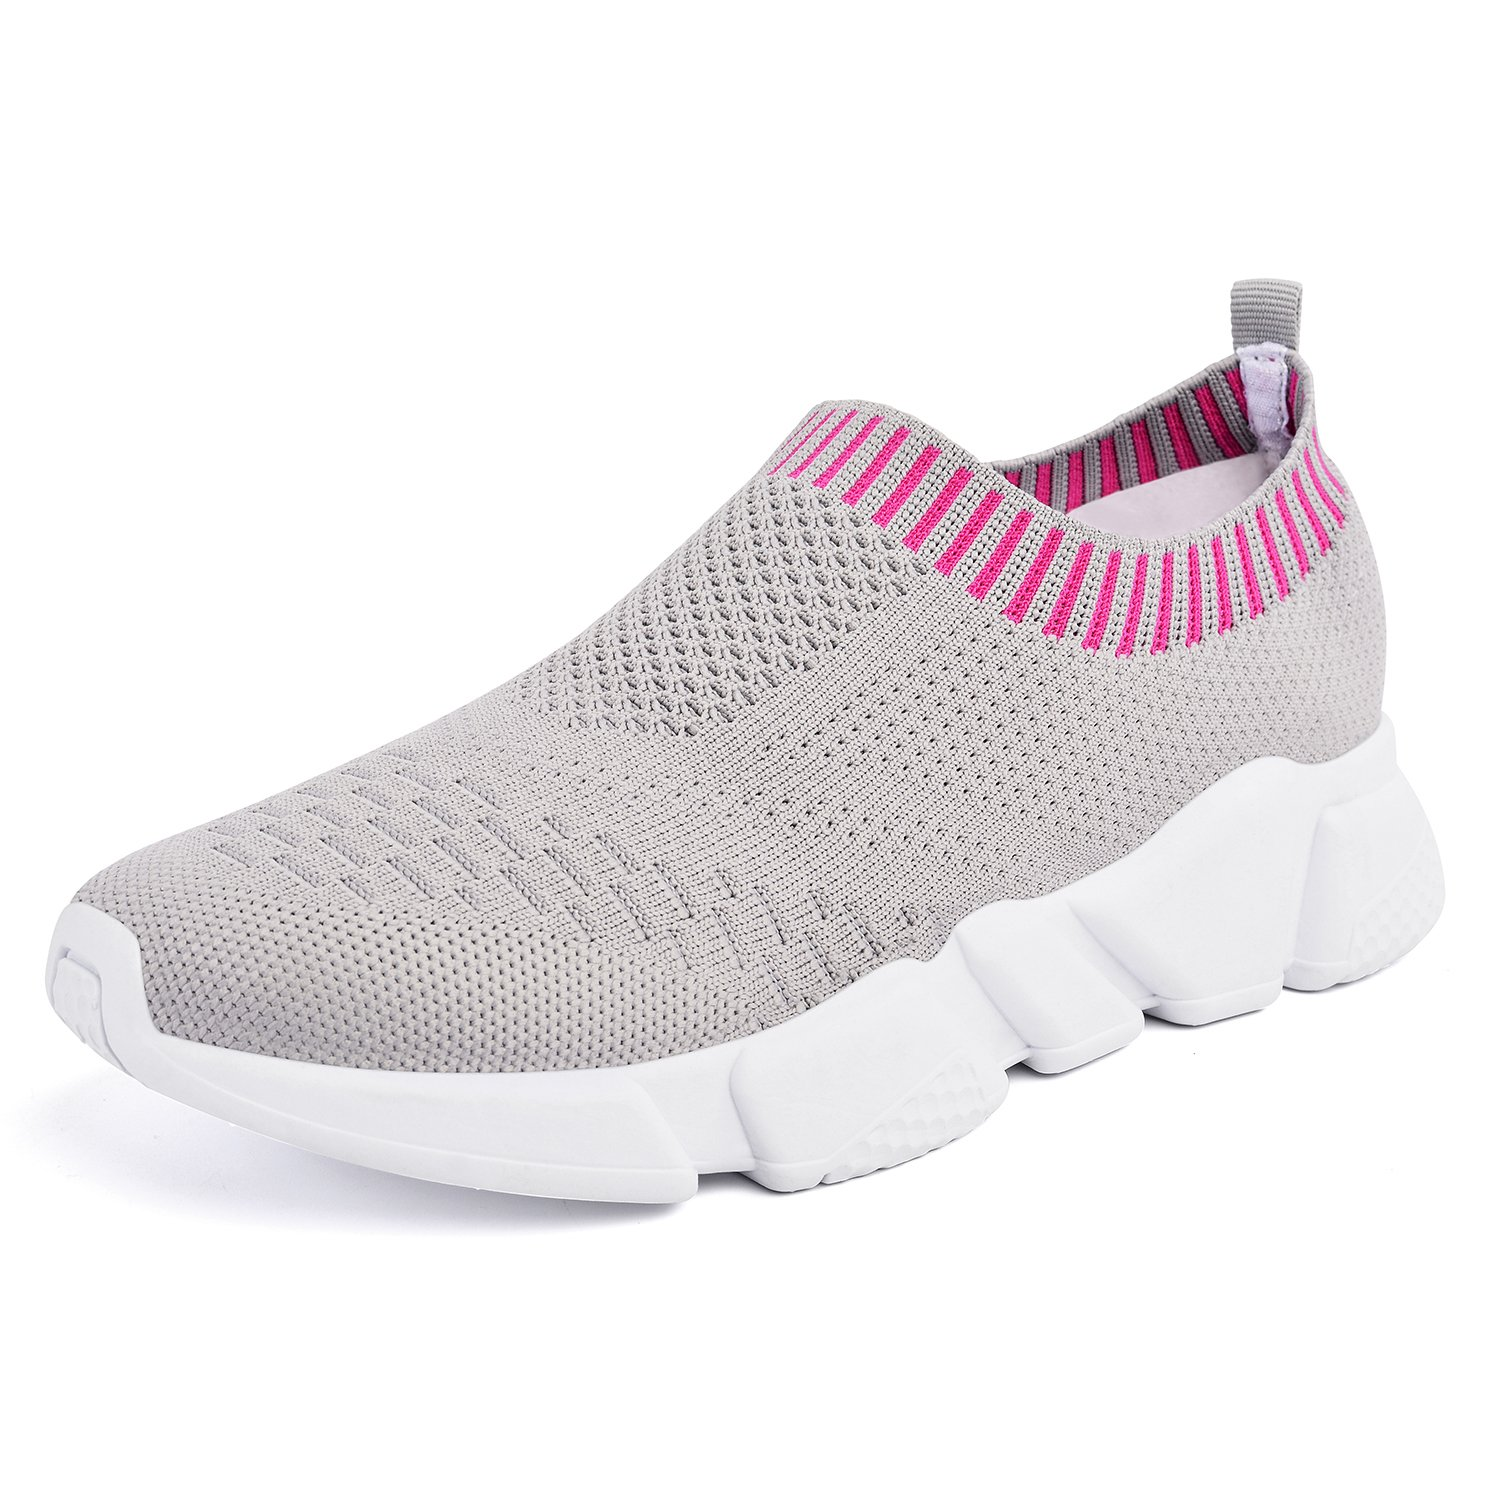 Sneaker Mesh Loafer Casual Beach